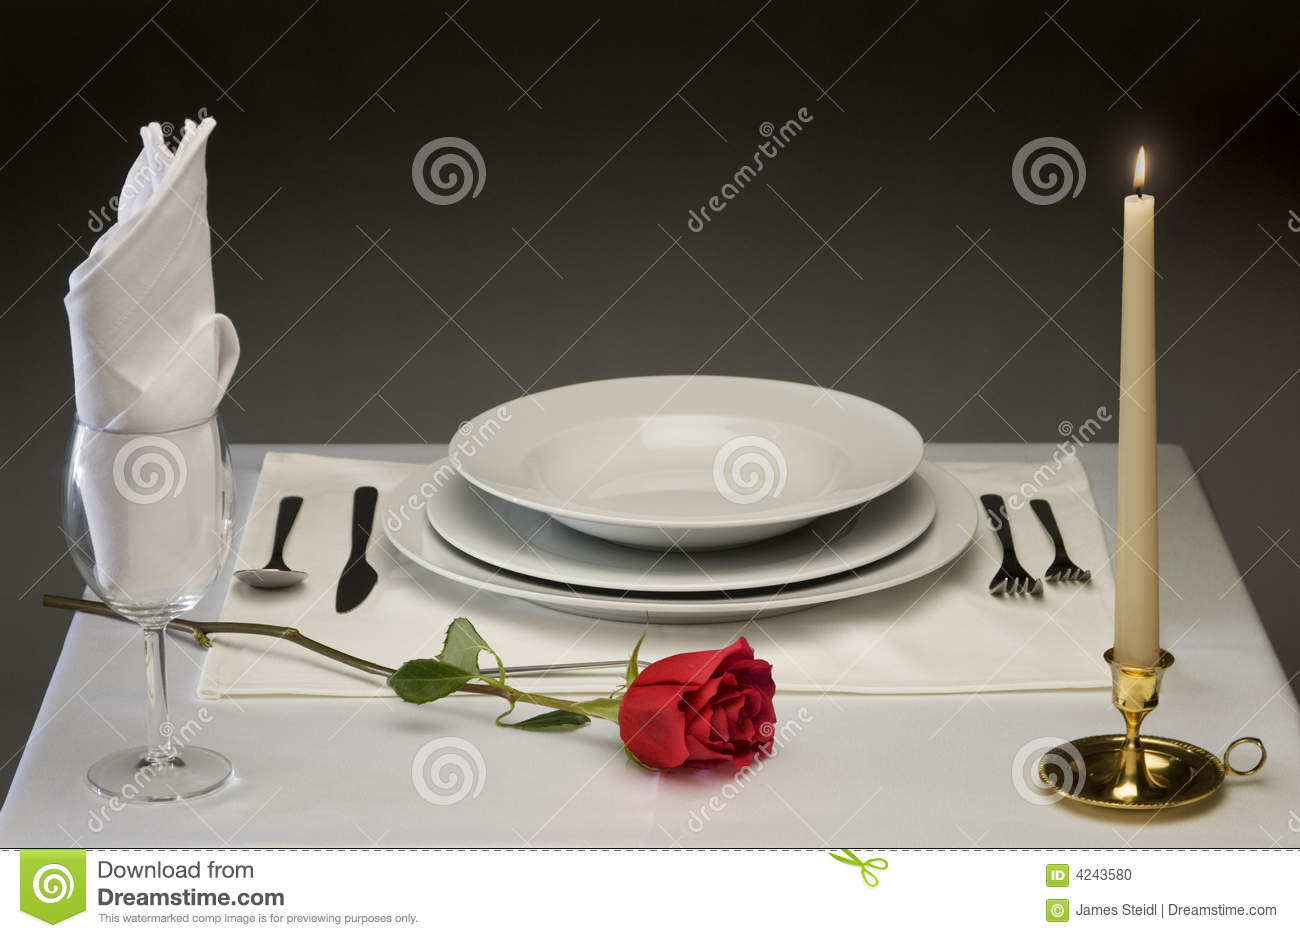 Fine Dining Stock Photo Image 4243580 : fine dining 4243580 from dreamstime.com size 1300 x 938 jpeg 93kB